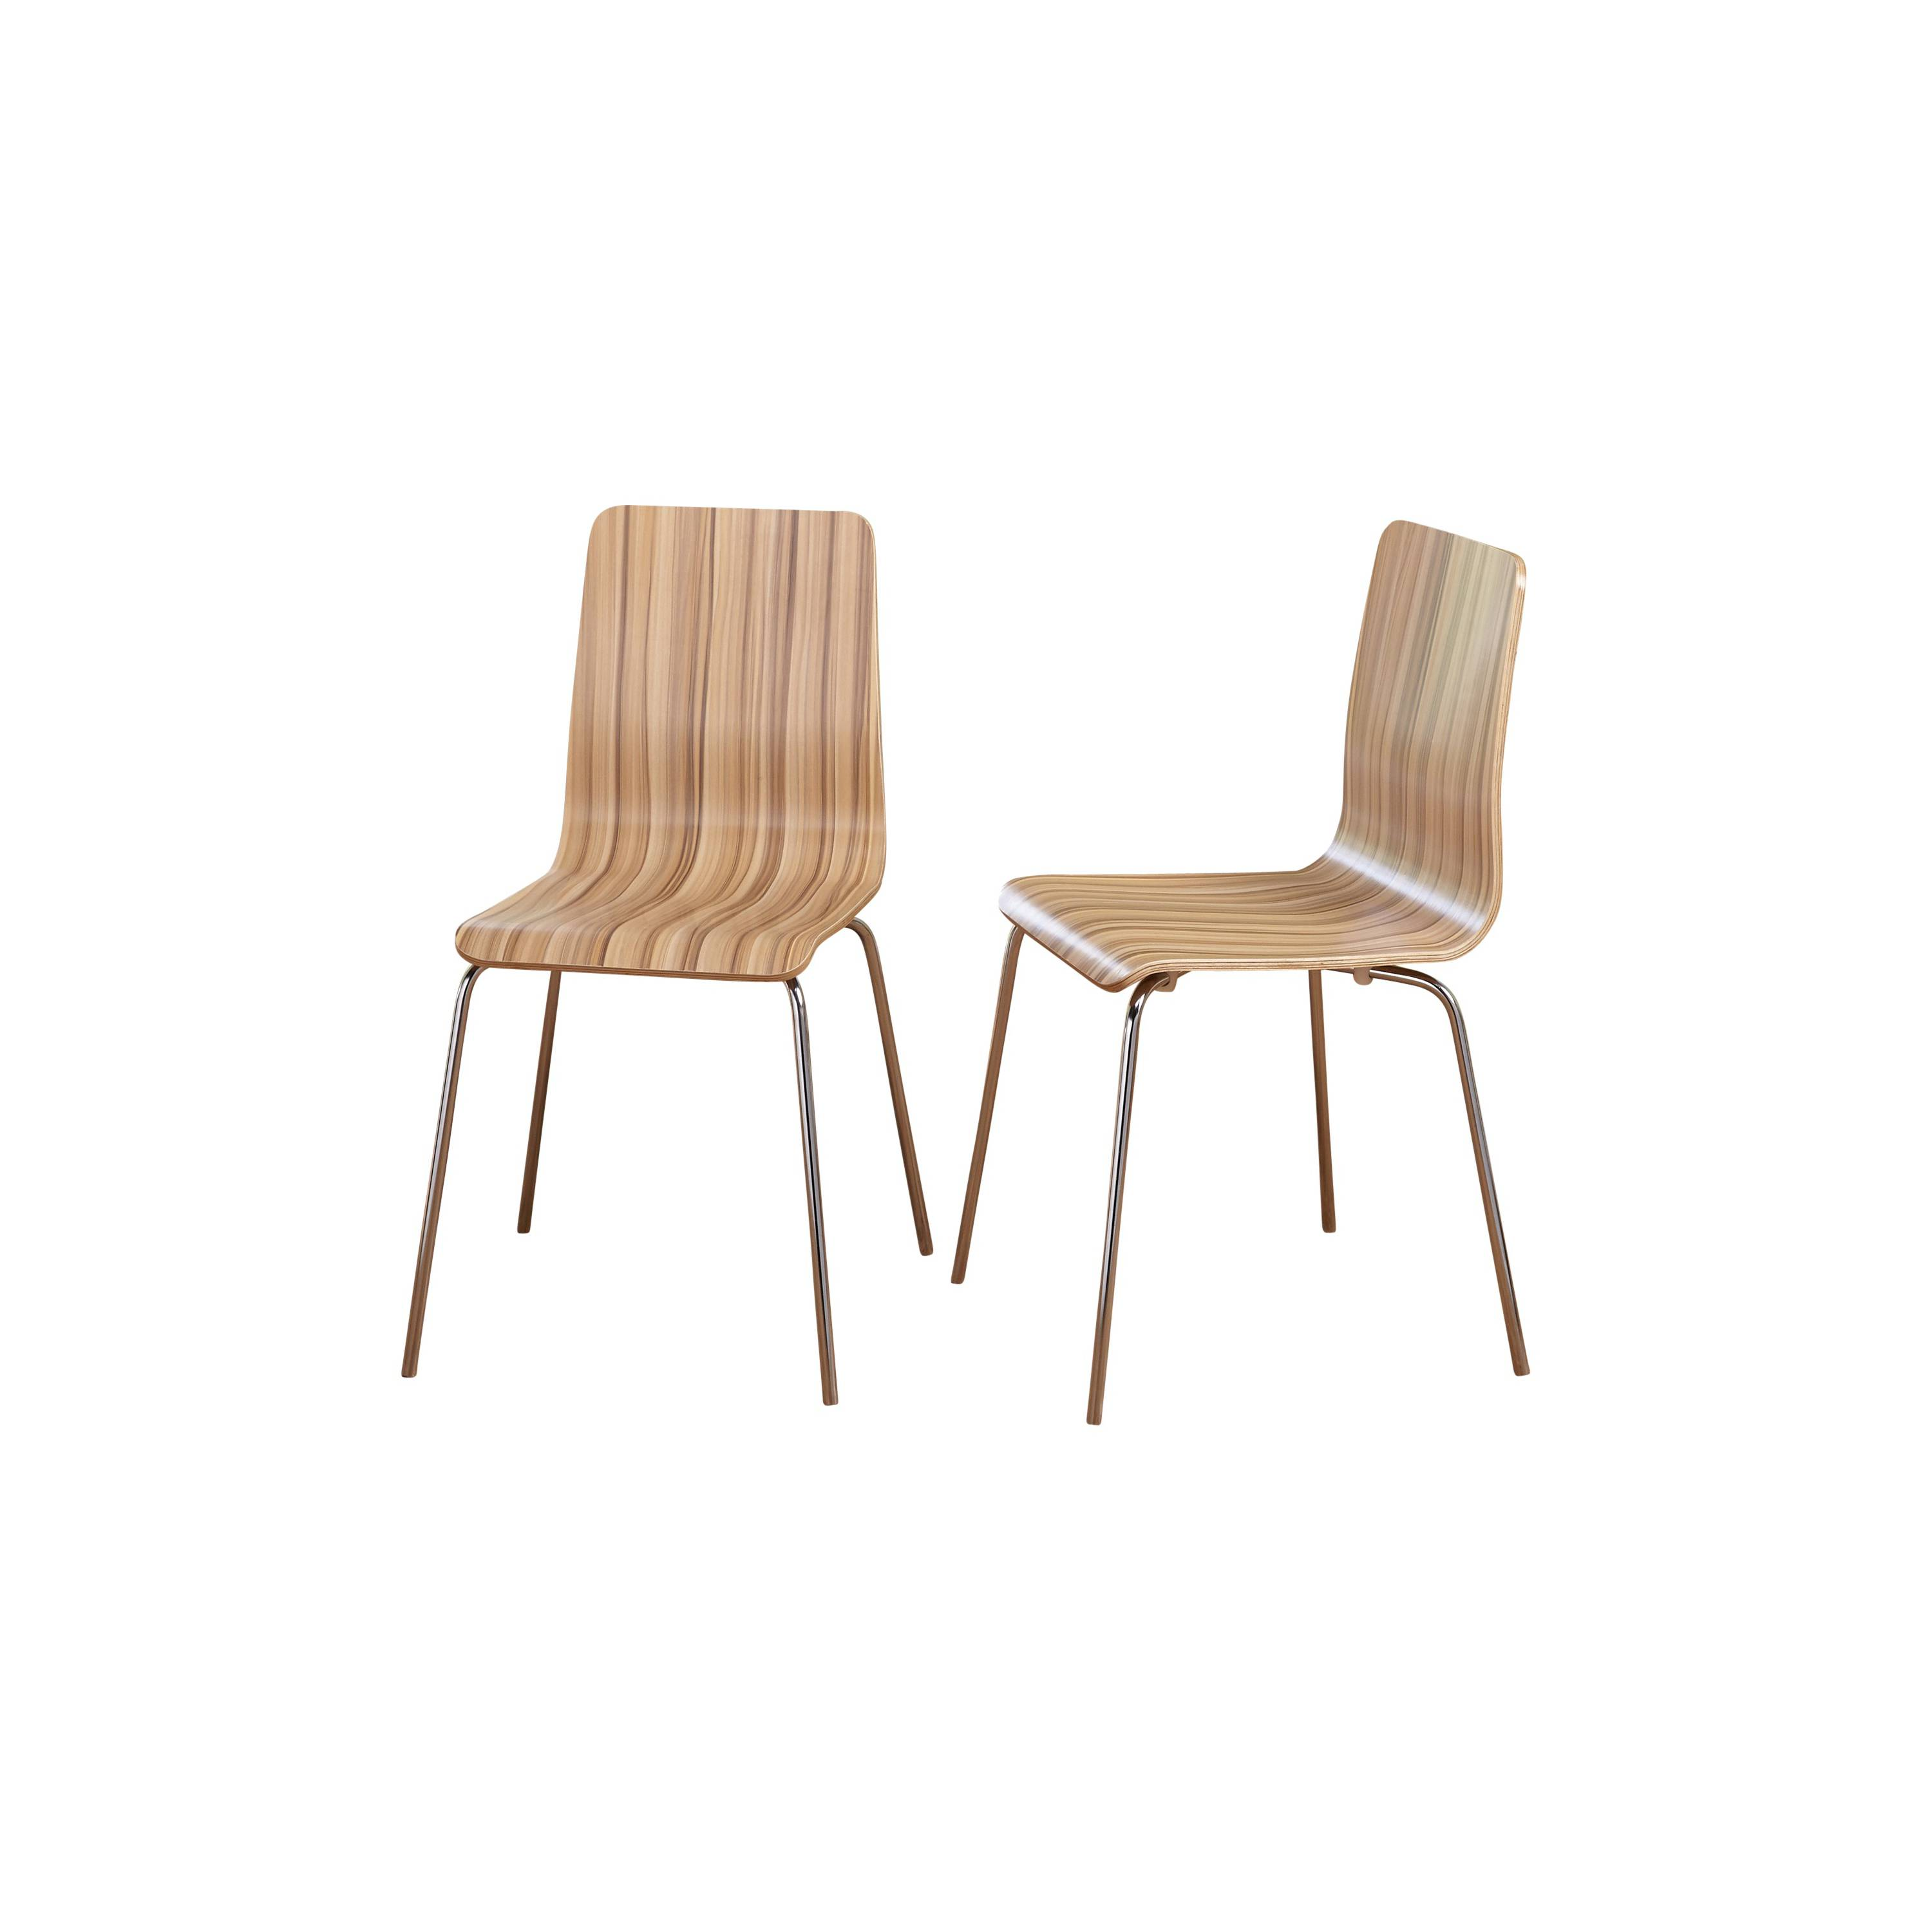 Modern Dining Chairs That Are Affordable, Stylish And Good